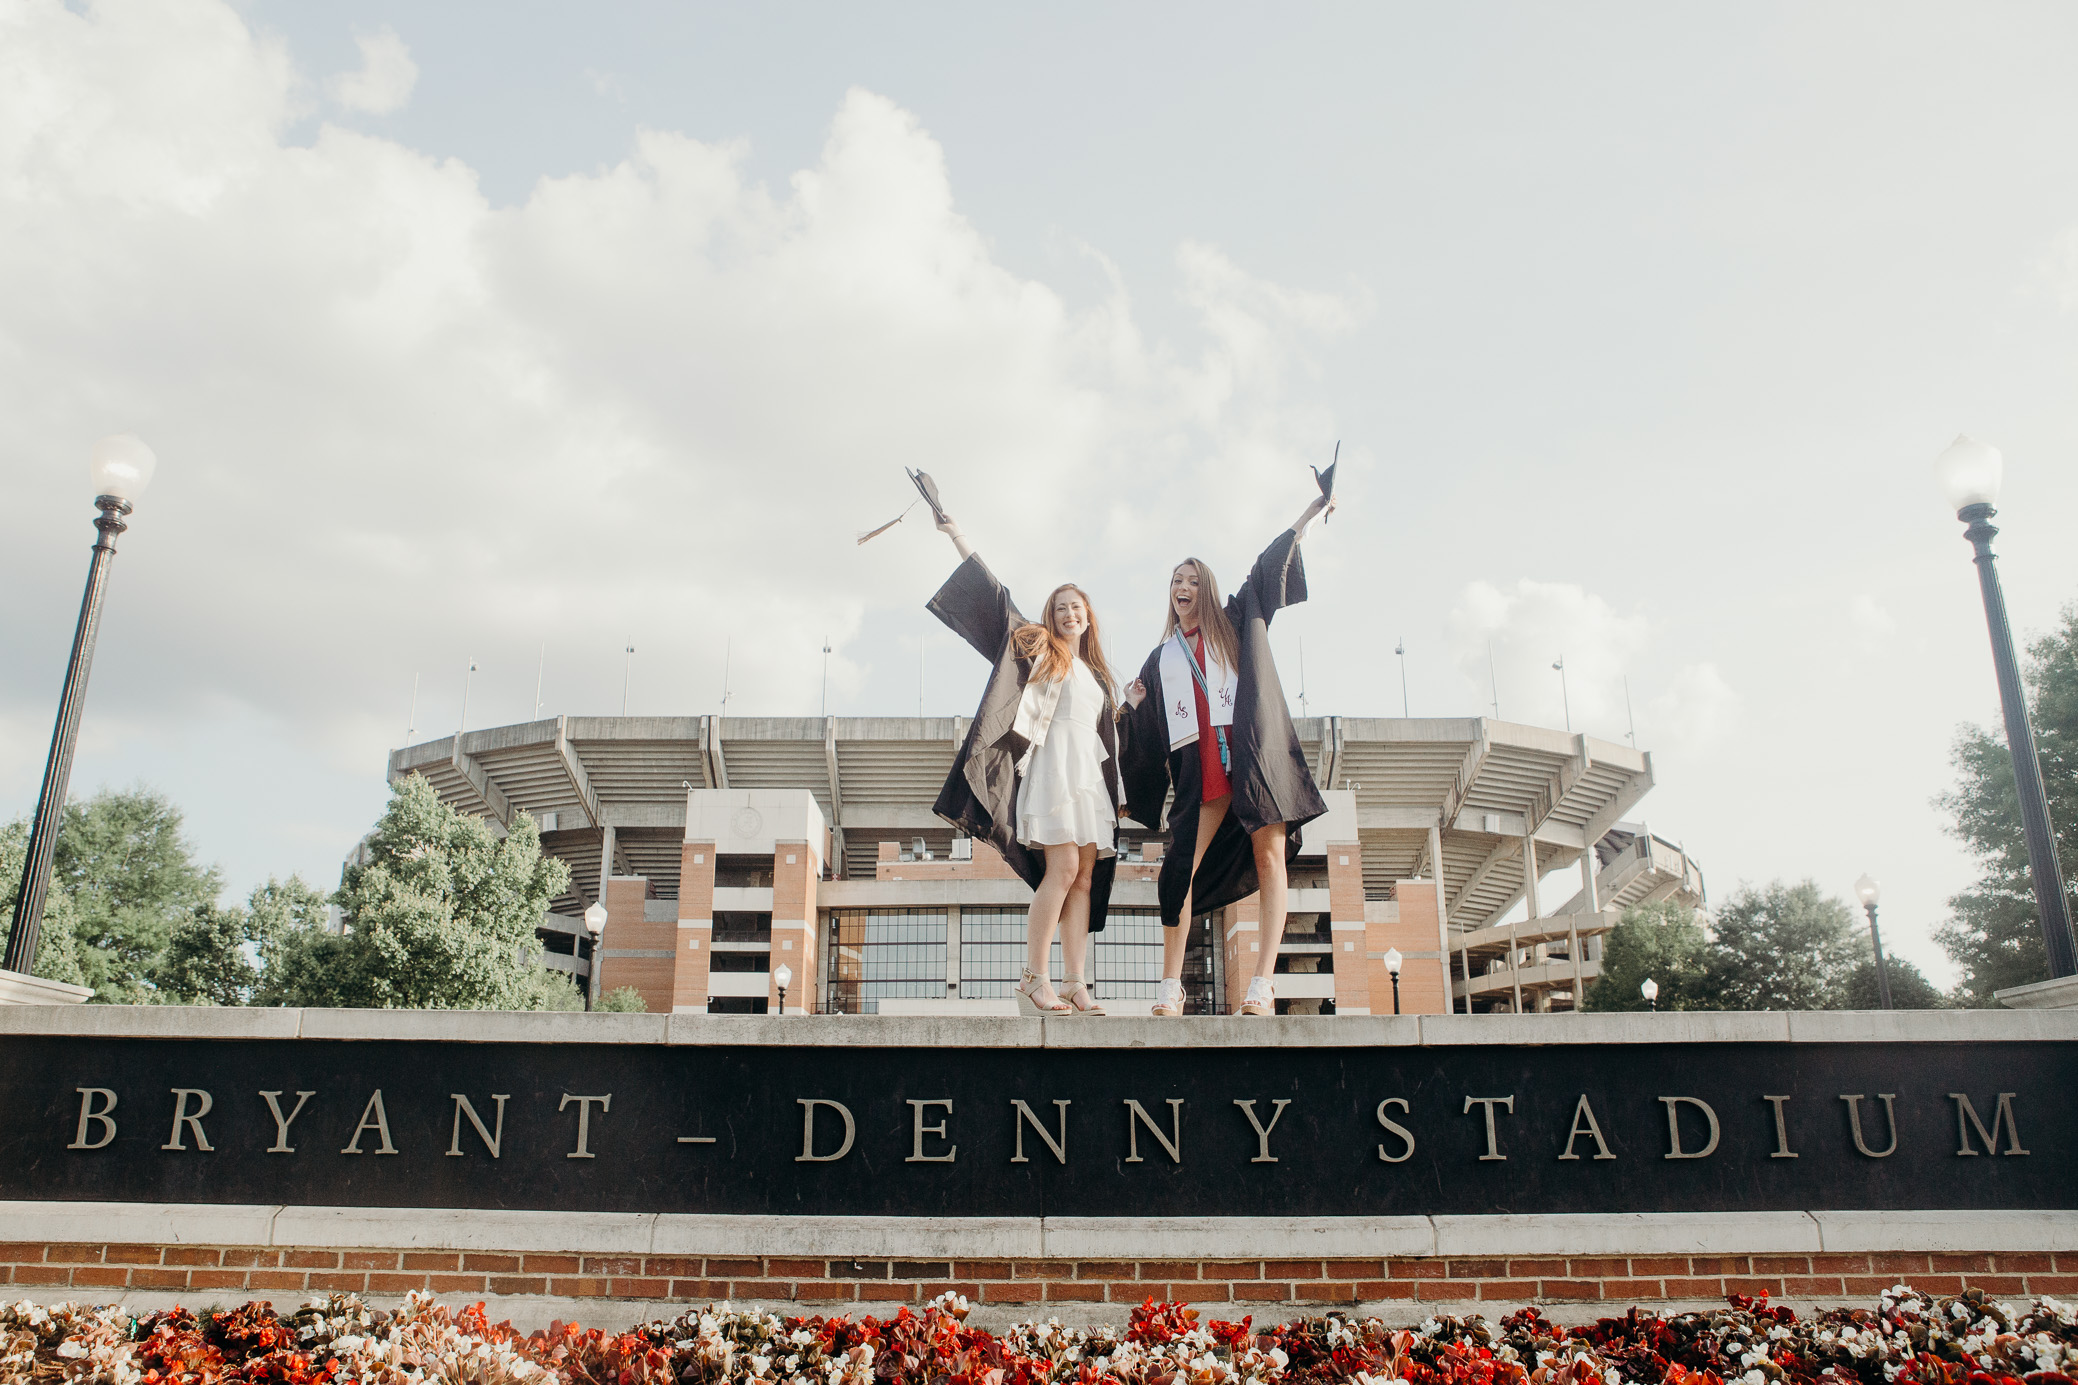 University of Alabama Graduation Portraits in Tuscaloosa, Alabama by David A. Smith of DSmithImages Wedding Photography, Portraits, and Events in the Birmingham, Alabama area